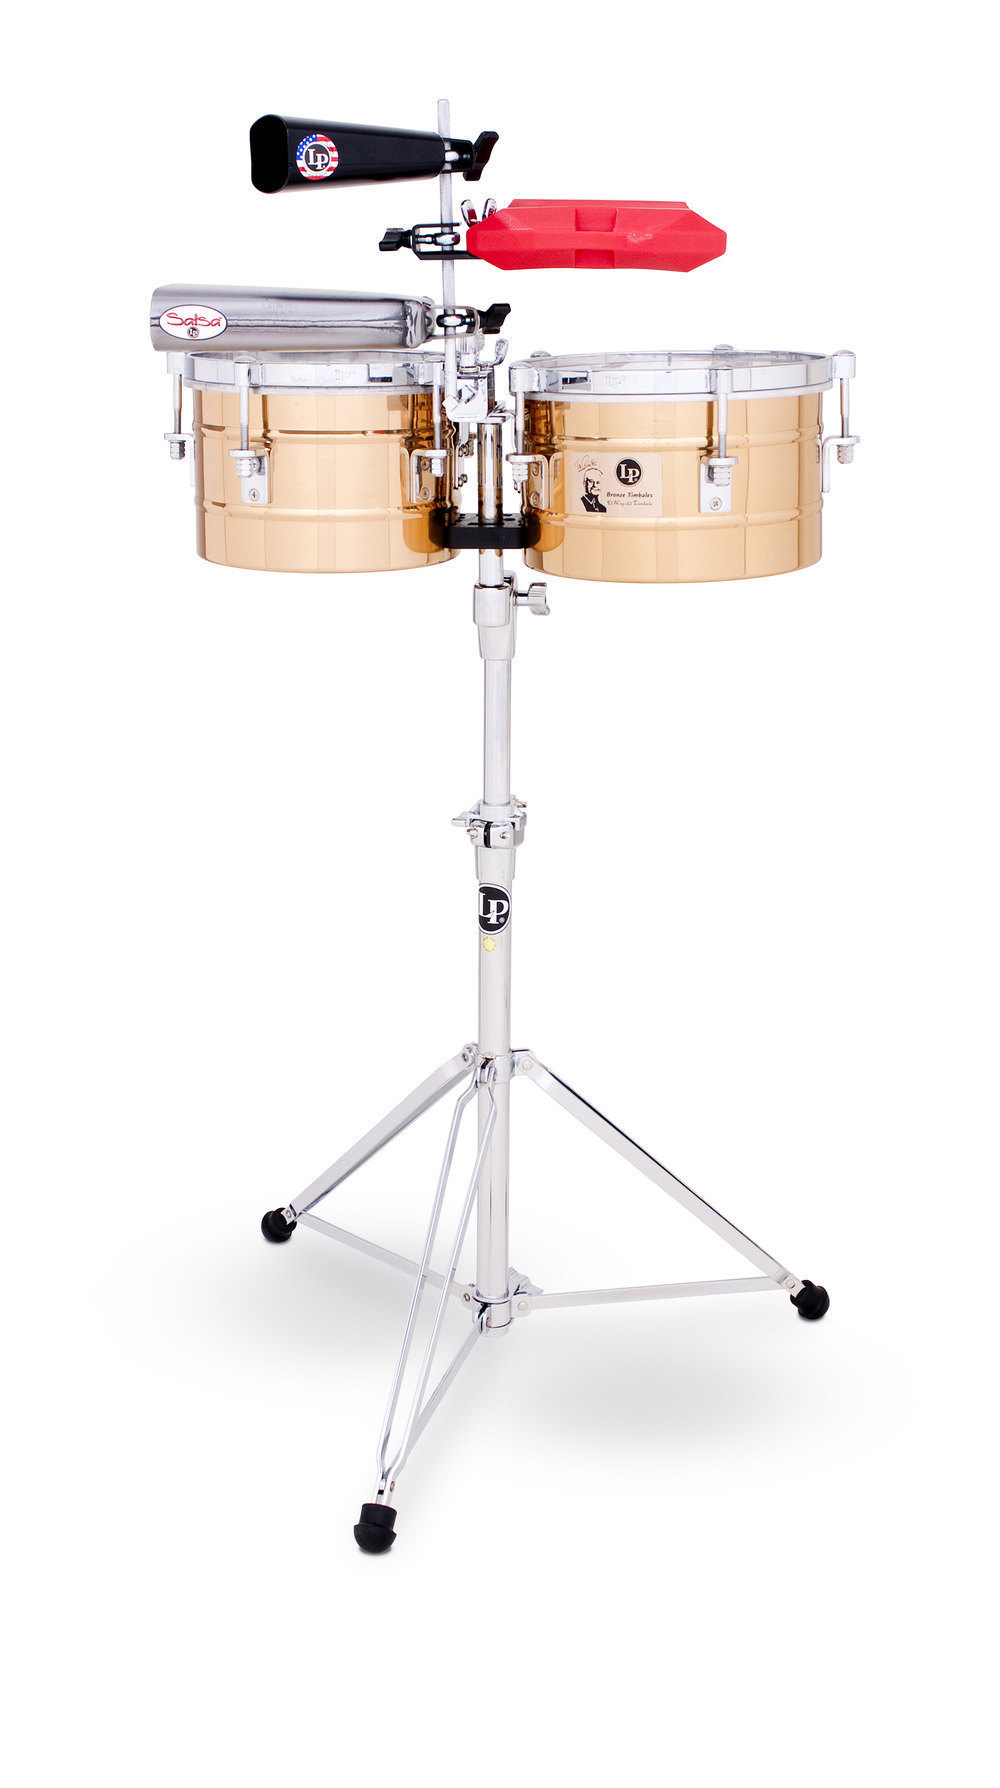 Billede af Timbals Tito Puente Timbalitos Brass